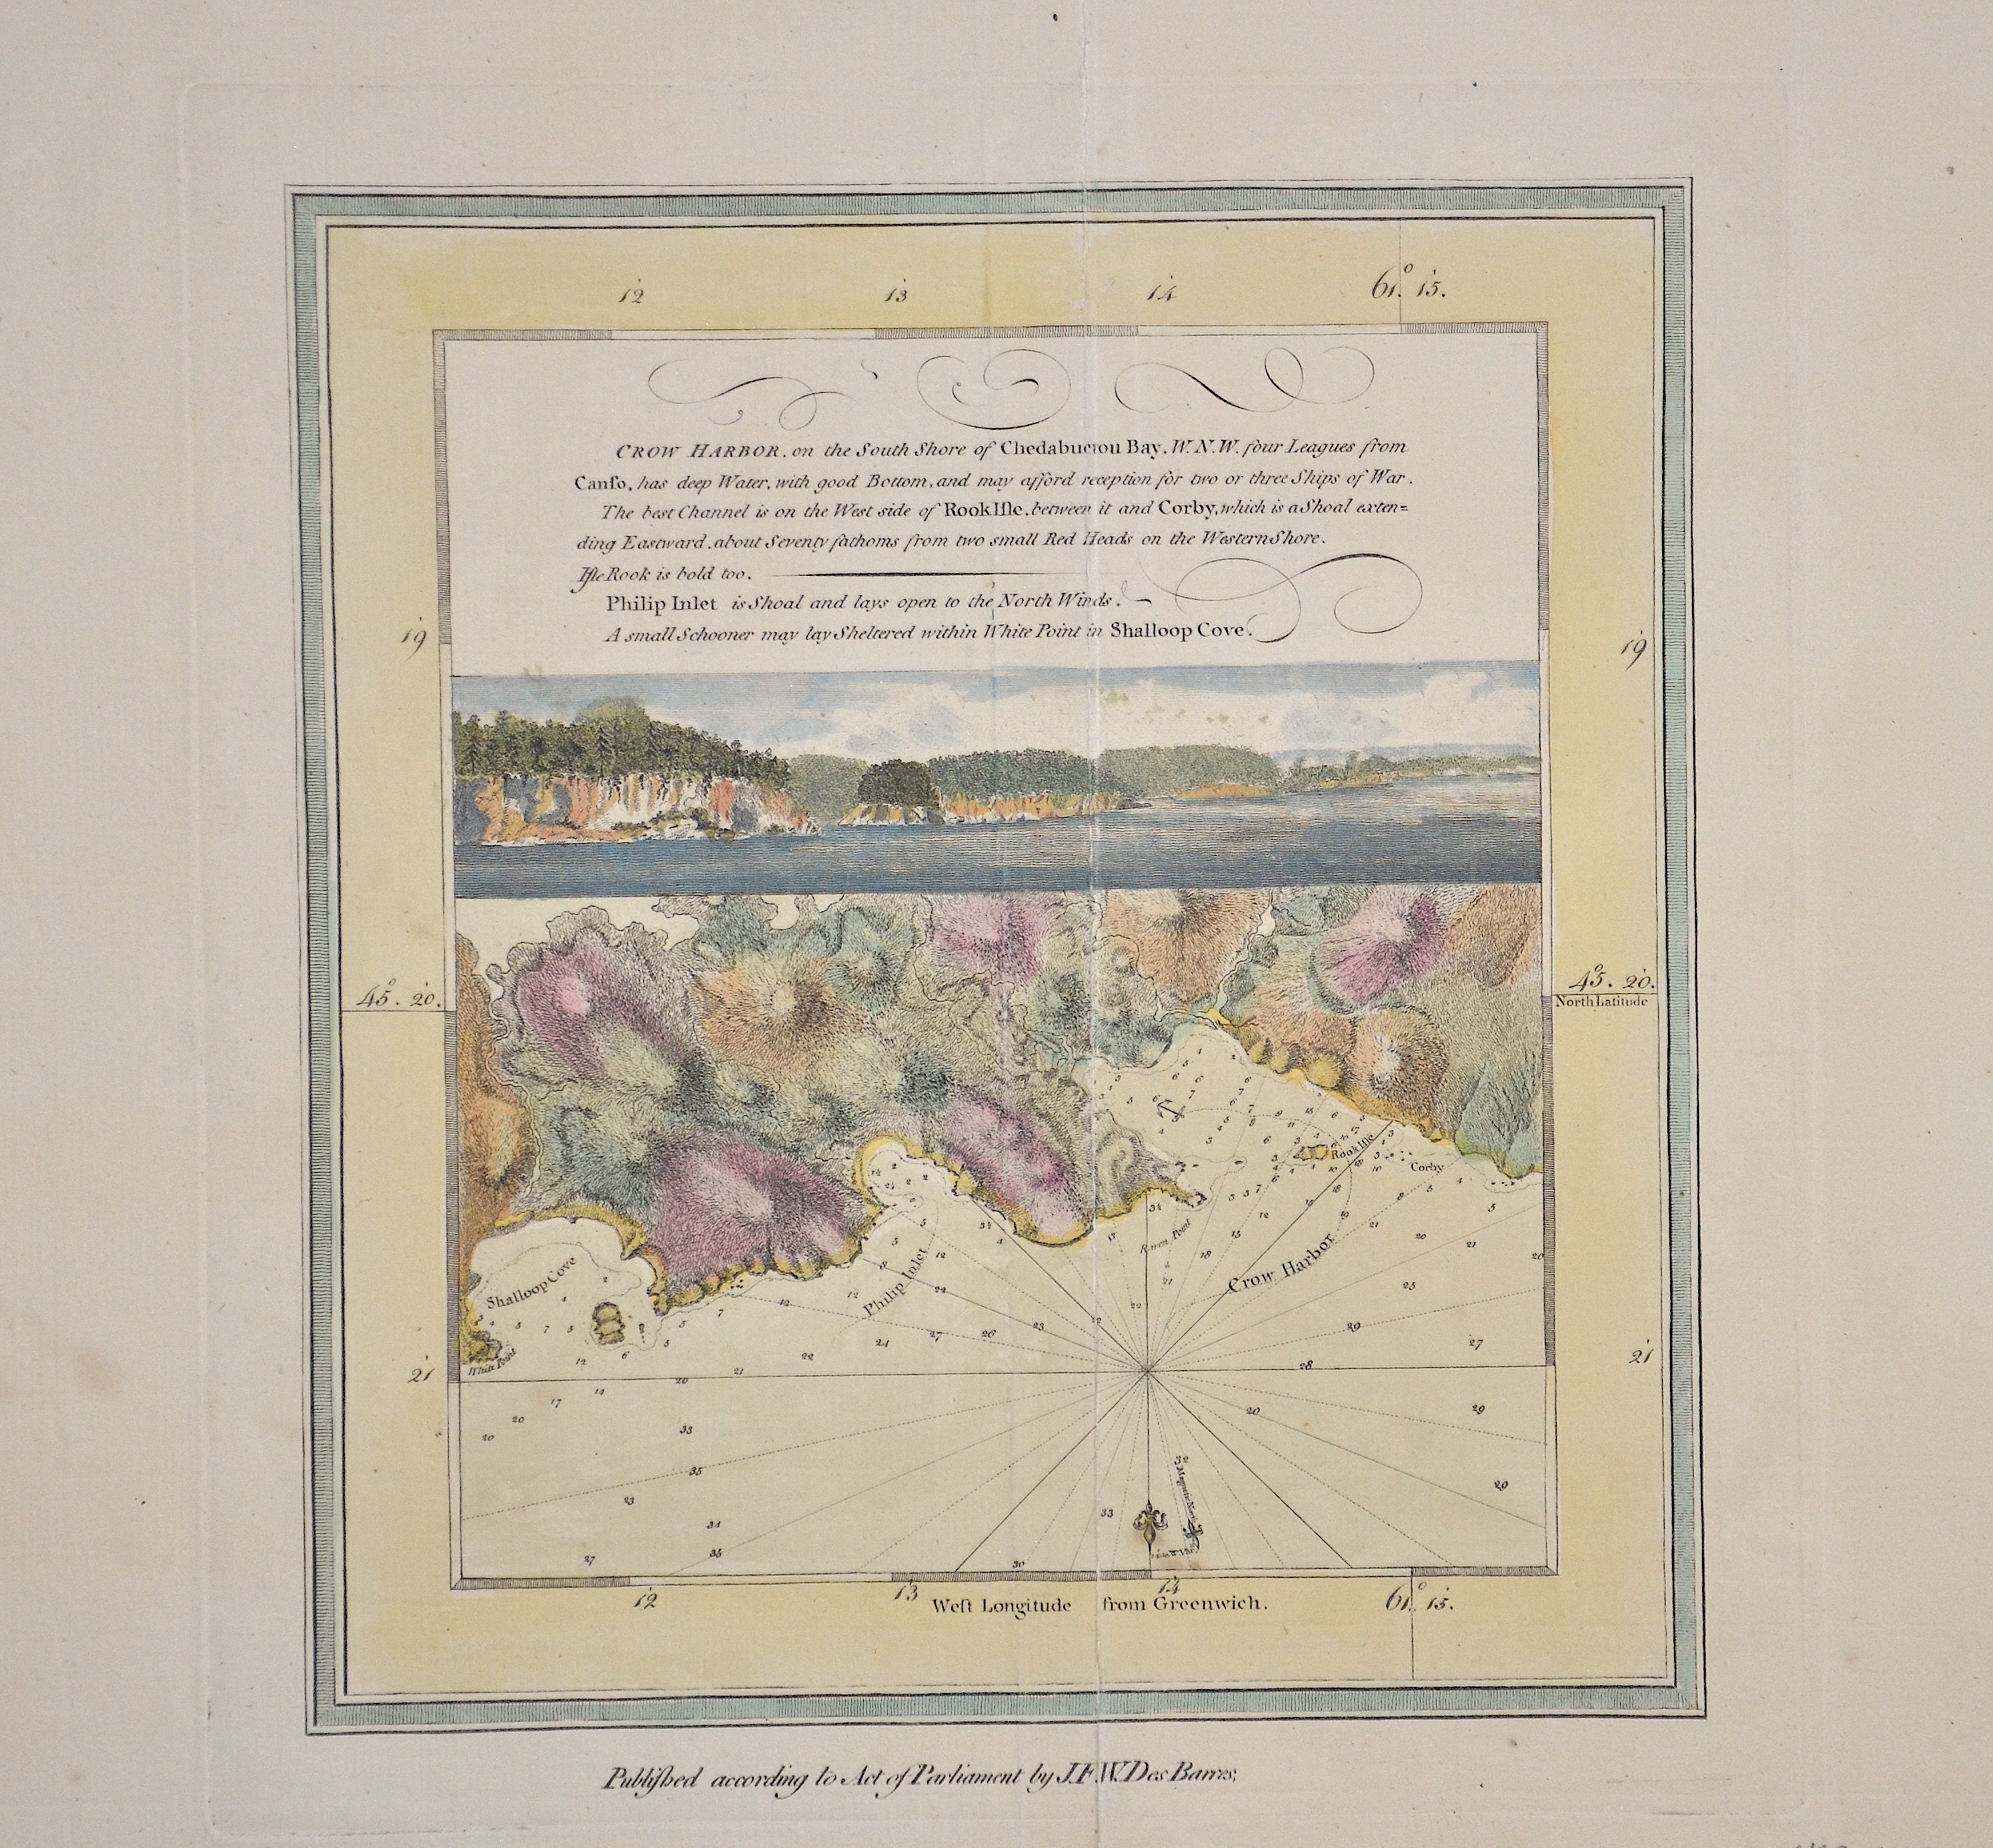 Barres de  Crow Harbor, on the South Shore of Chedabuctou Bay. W. N. W. four Leagues from…